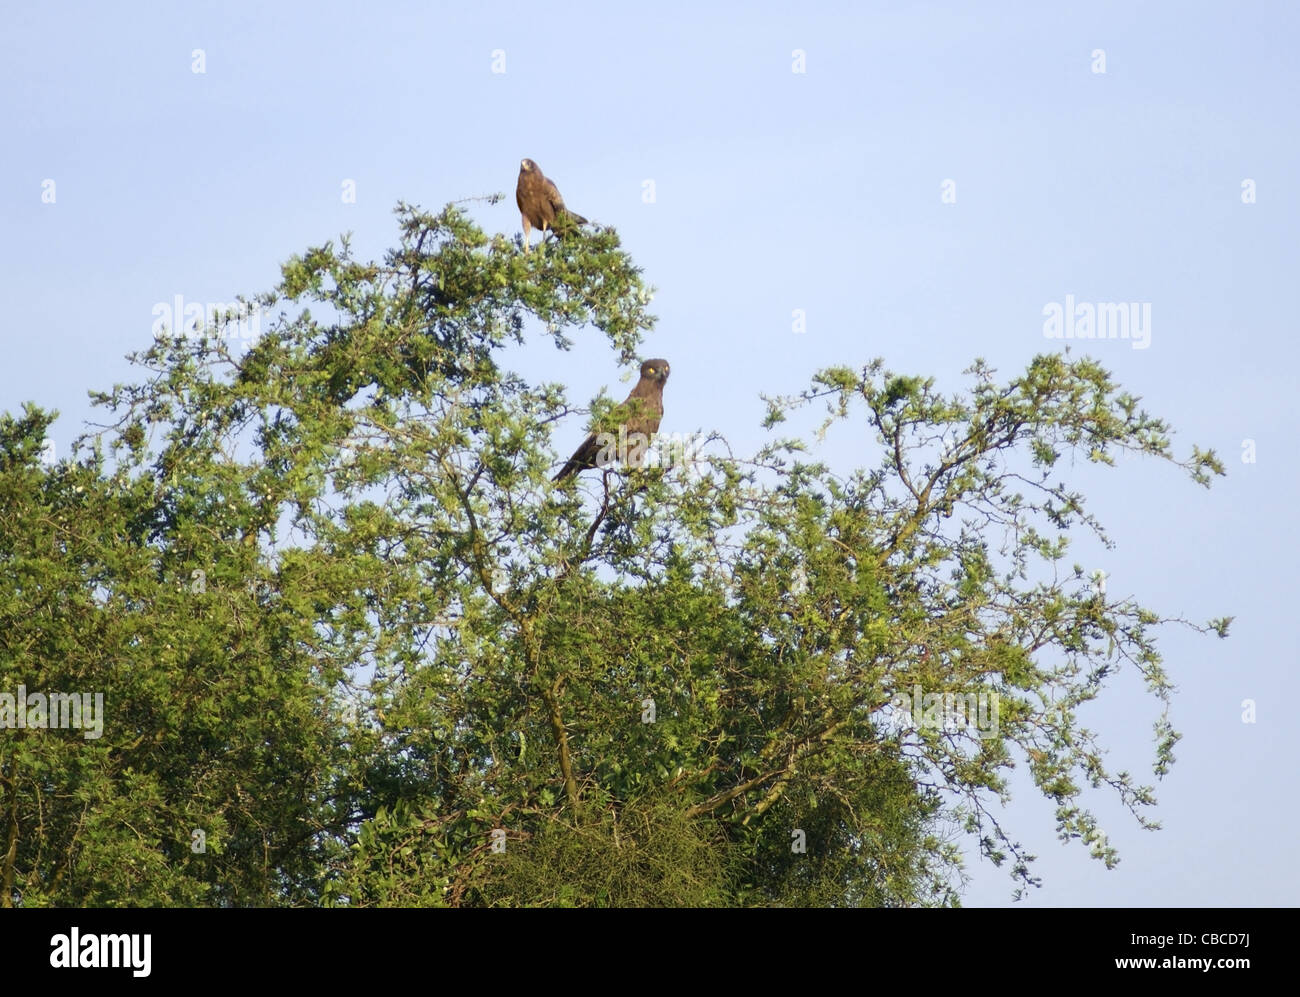 two birds sitting in a treetop in Uganda (Africa) in front of misty sky - Stock Image